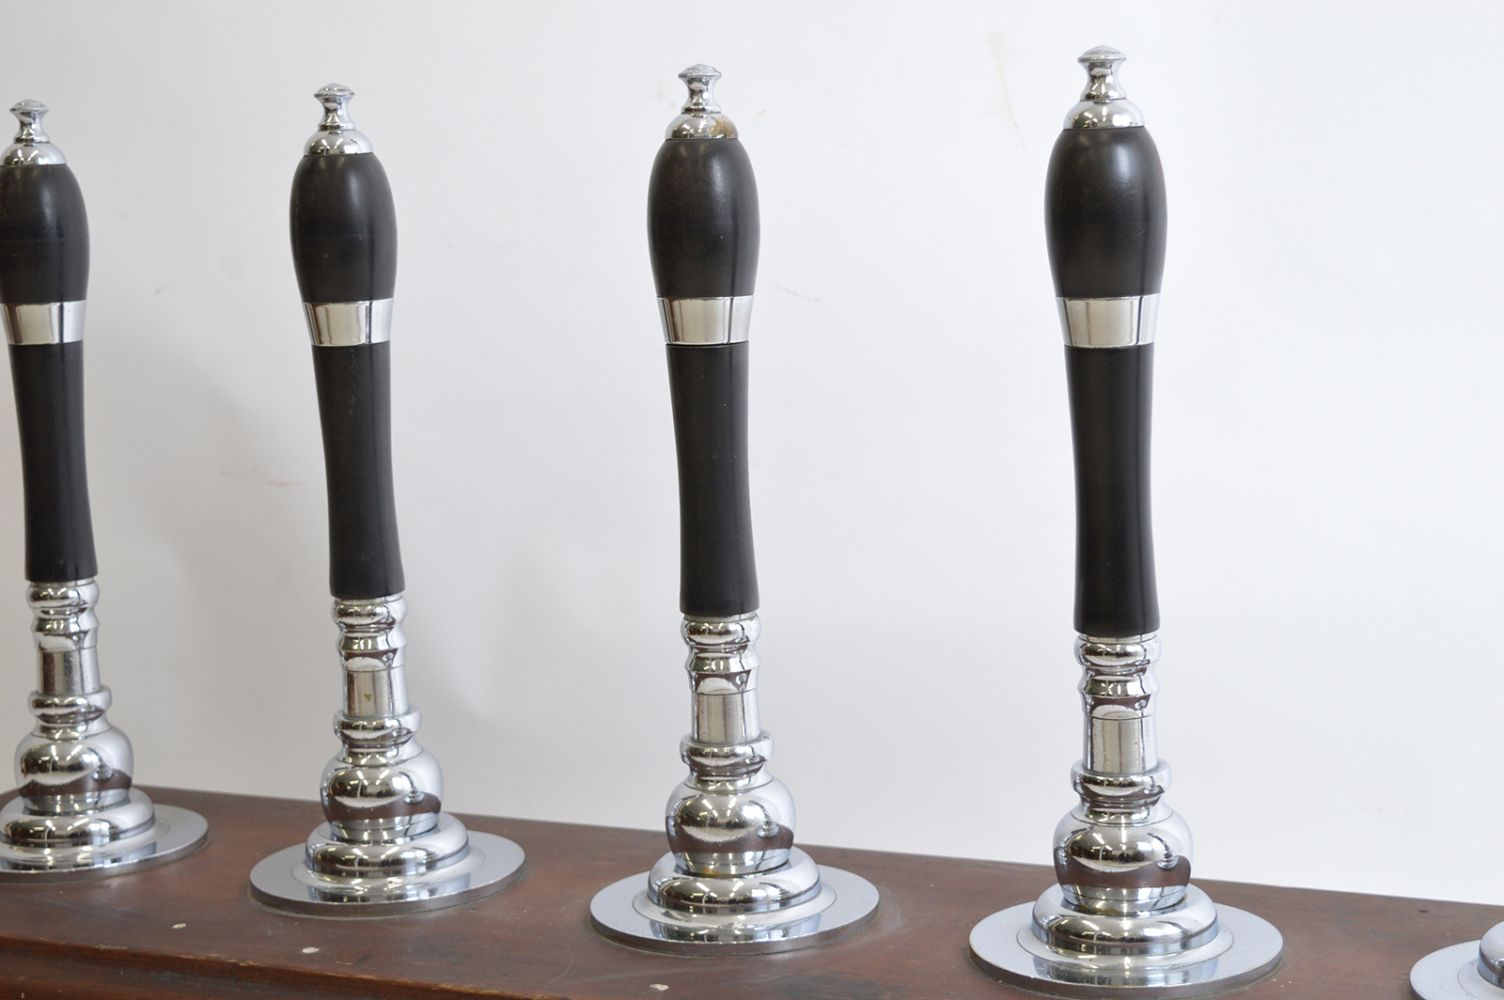 SET OF FIVE EBONY AND CHROME BEER PULLS - Image 2 of 2